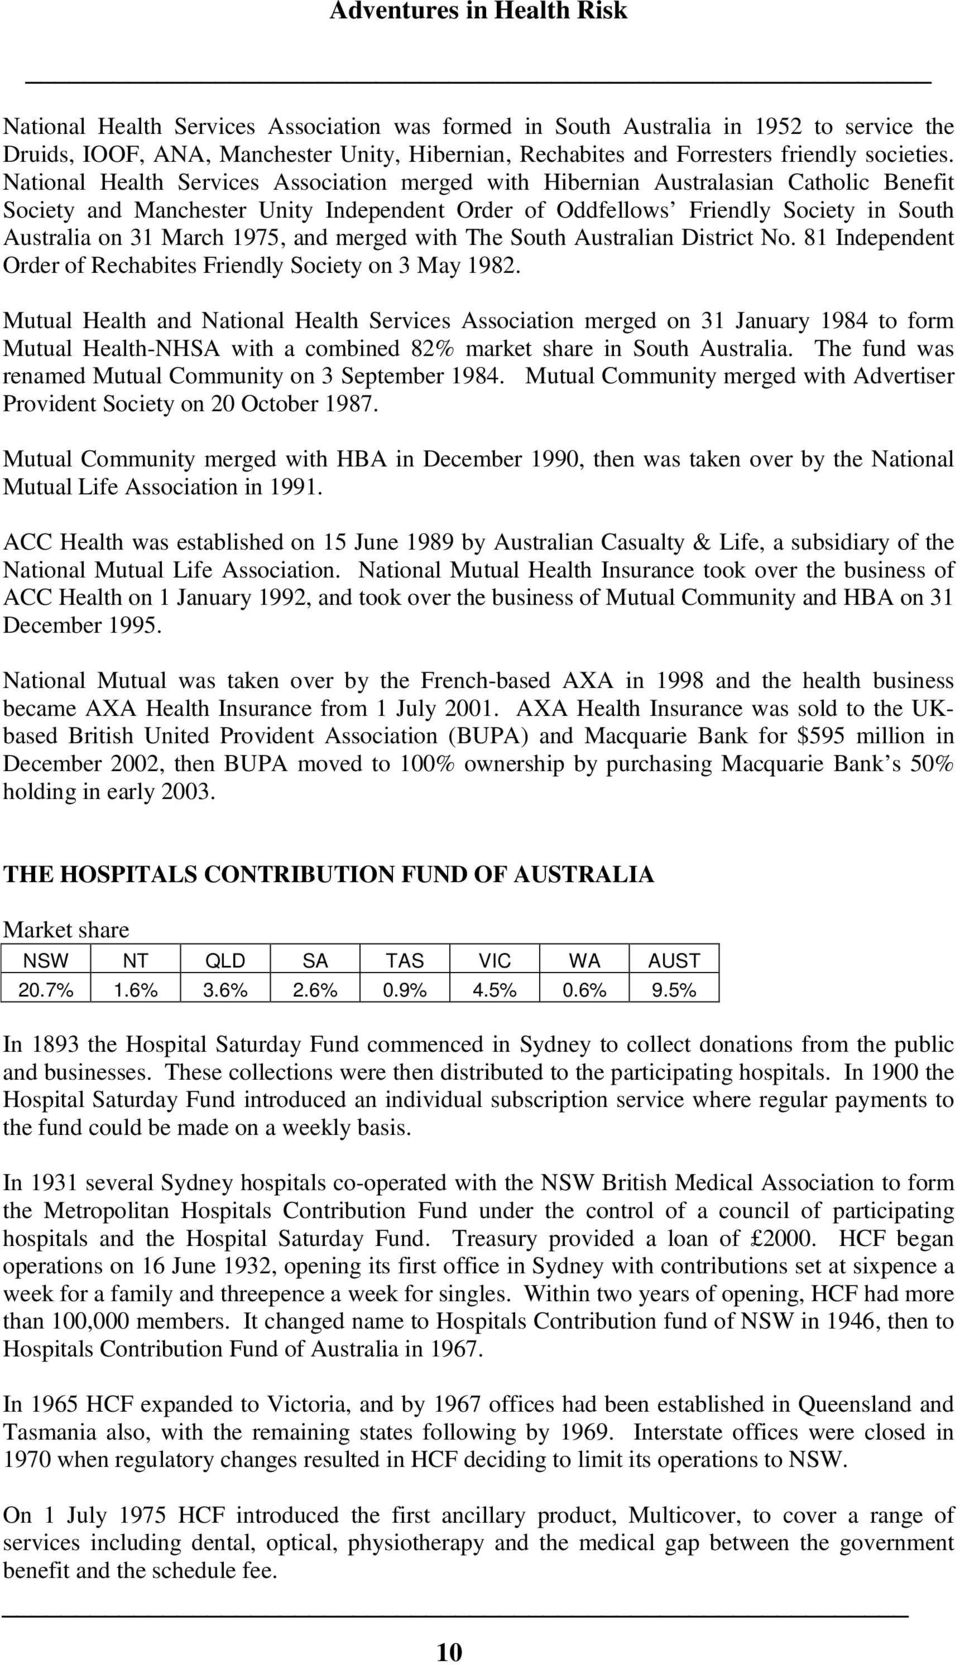 1975, and merged with The South Australian District No. 81 Independent Order of Rechabites Friendly Society on 3 May 1982.